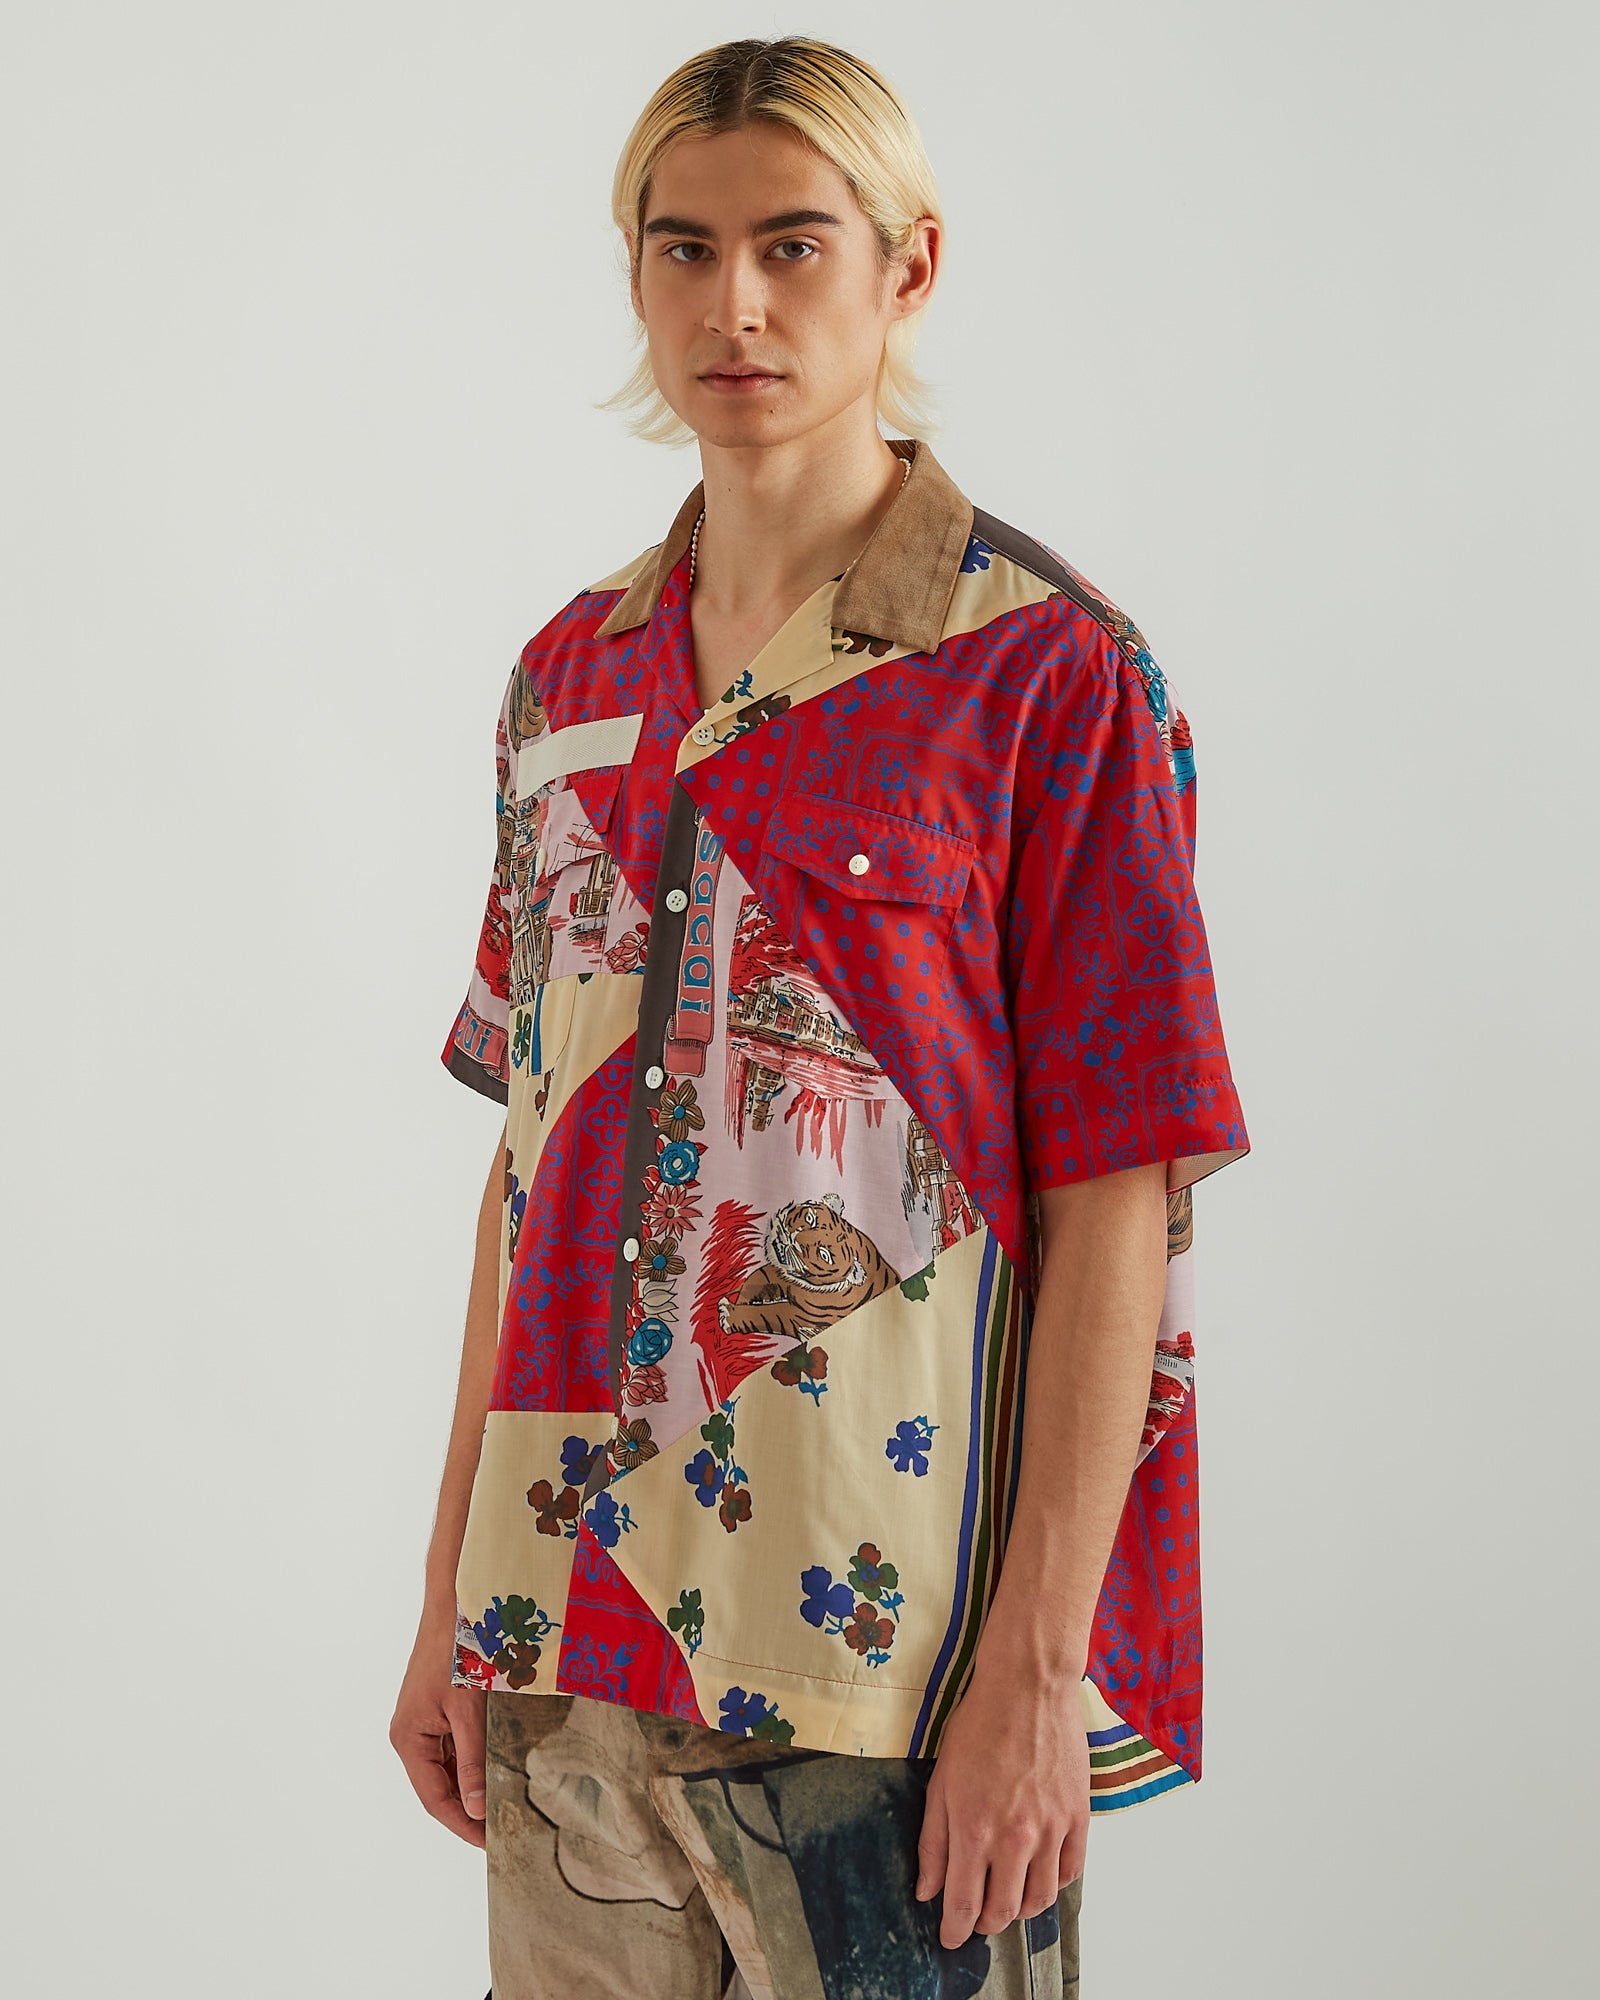 Hank Willis Thomas Edition Archive Shirt in Red Multi